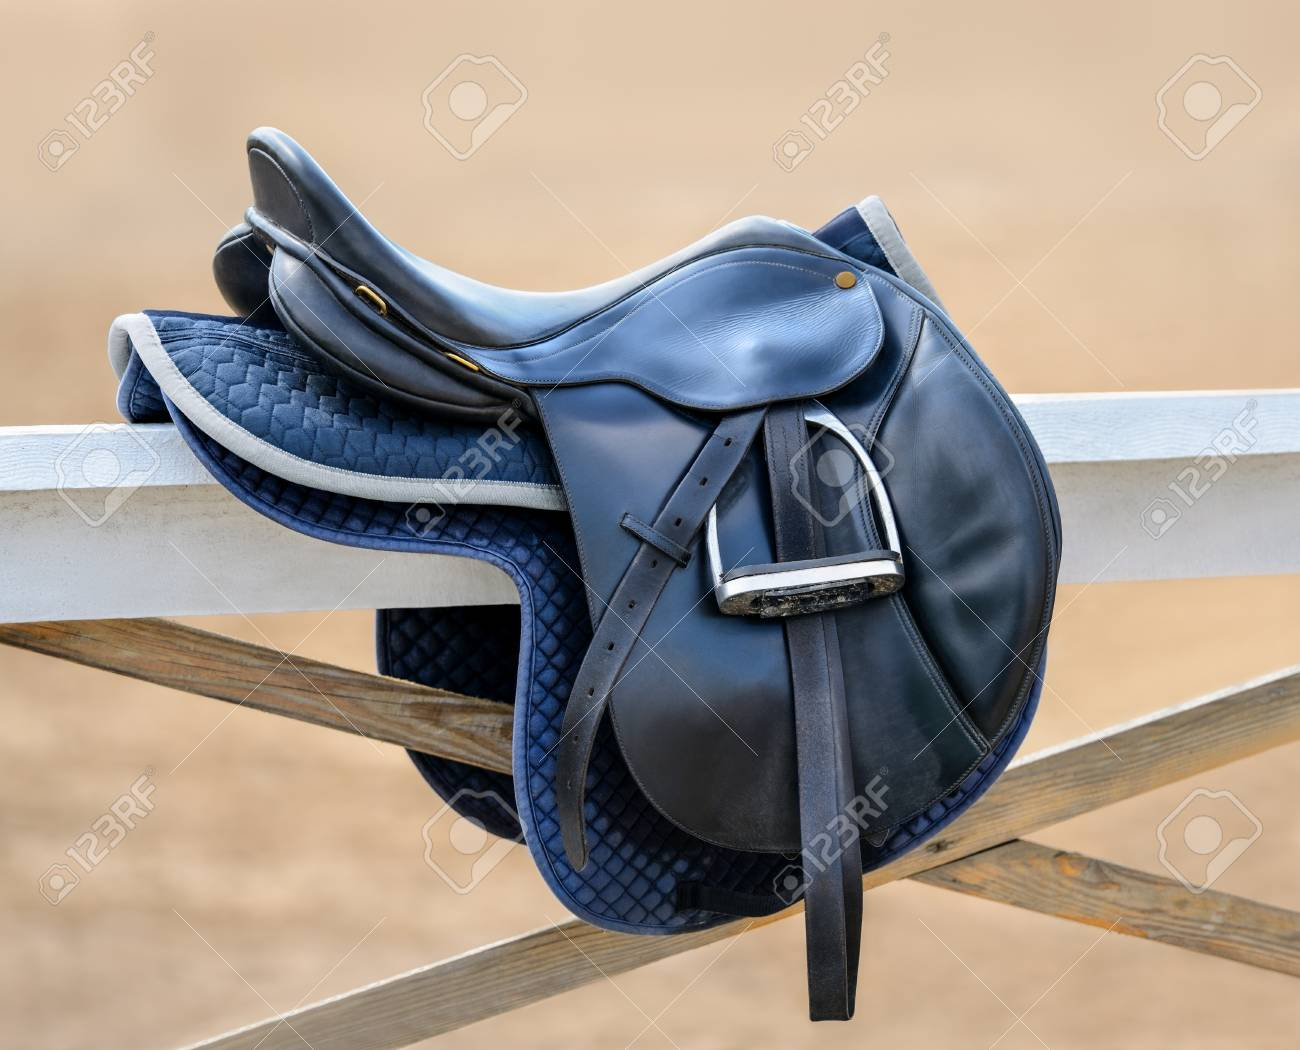 Black English Saddle Hanging On Fence Near Stables Side View Stock Photo Picture And Royalty Free Image Image 96324596